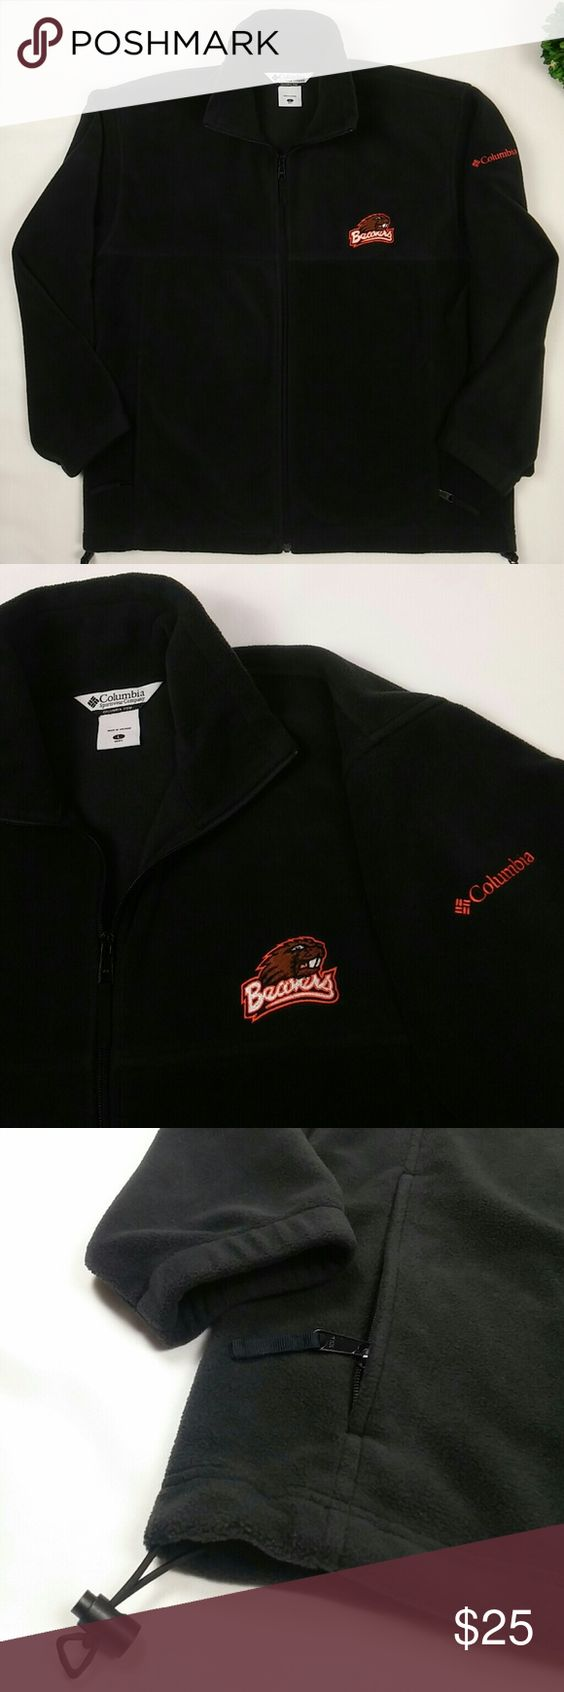 """COLUMBIA Beavers Mens fleece zip up jacket A Very warm Beavers Fan fleece zip-up jacket from Columbia. In excellent condition.  Armpit to armpit laying flat 25"""" Length 27.5"""" Columbia Sweaters Zip Up"""